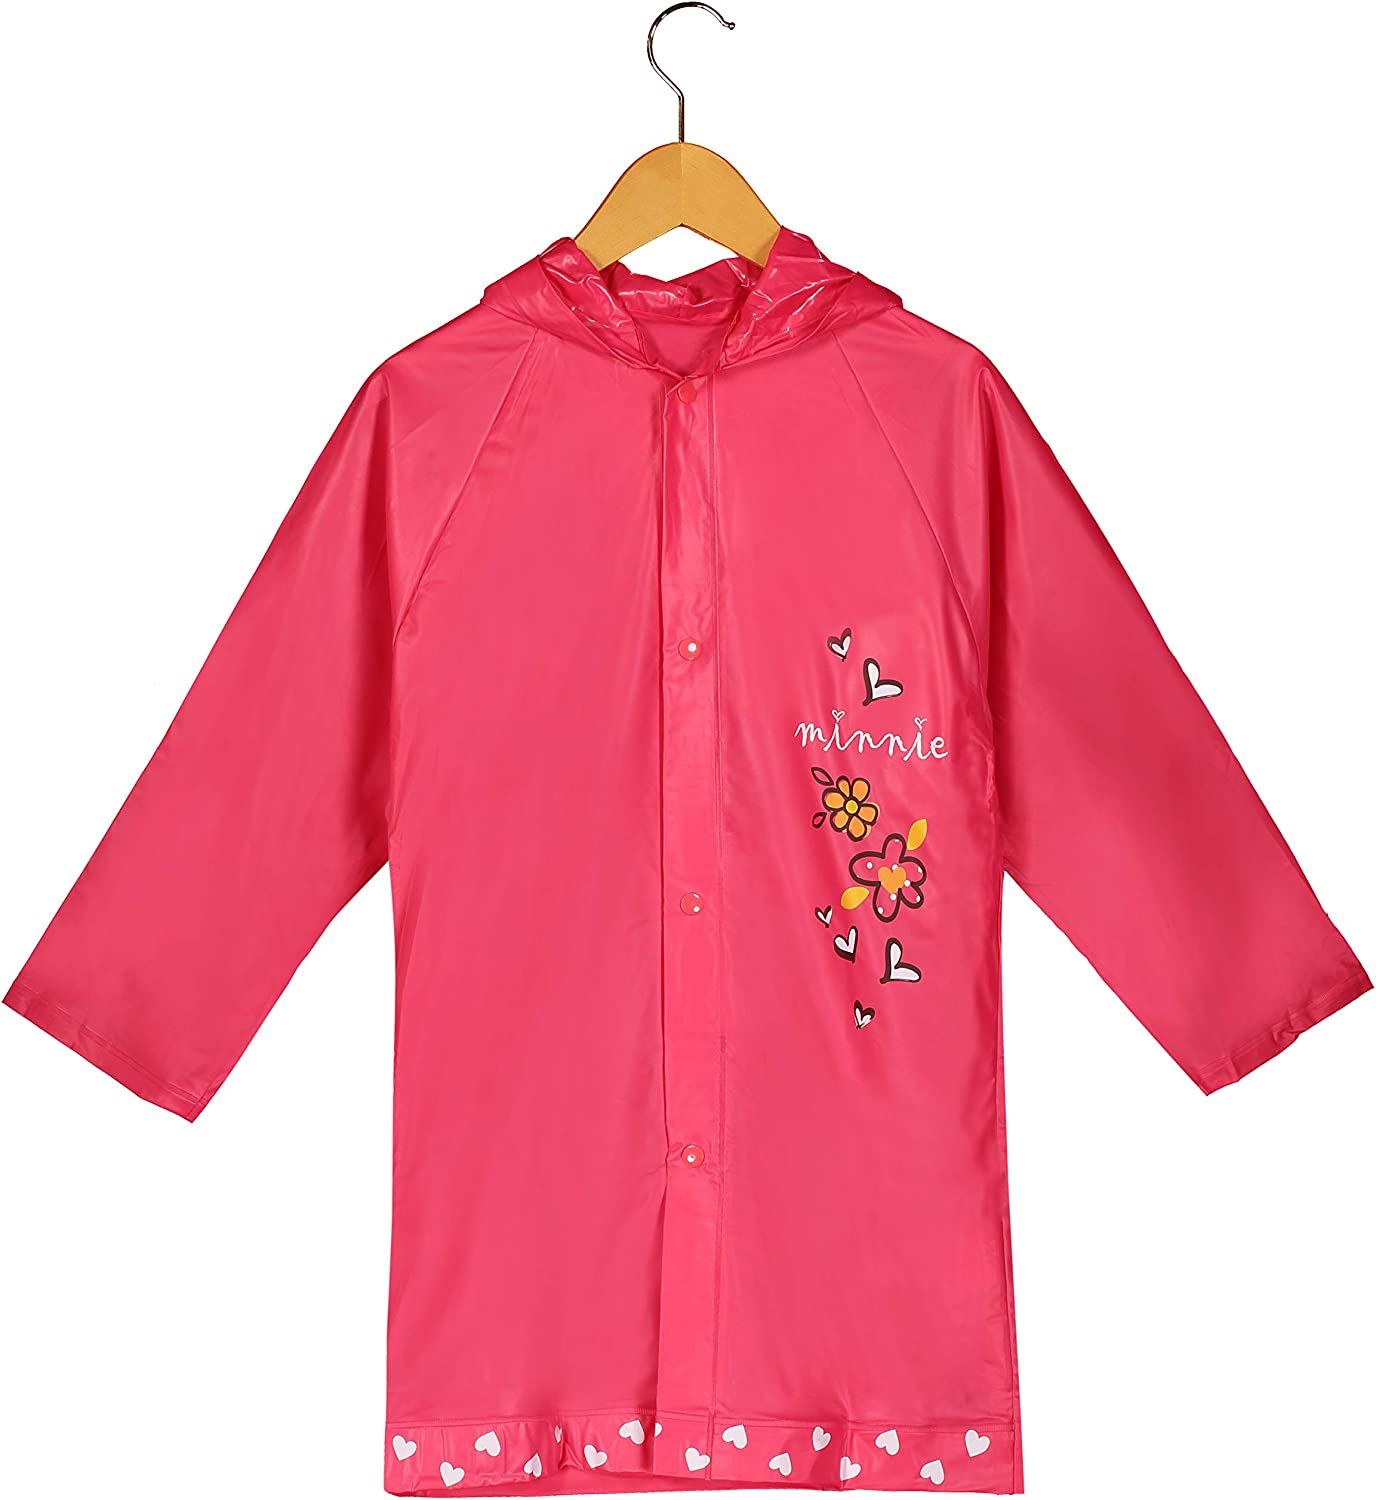 Disney New Minnie Mouse Girl's Pink Rain Slicker Size Small 2/3 Medium 4/5 and Large 6/7